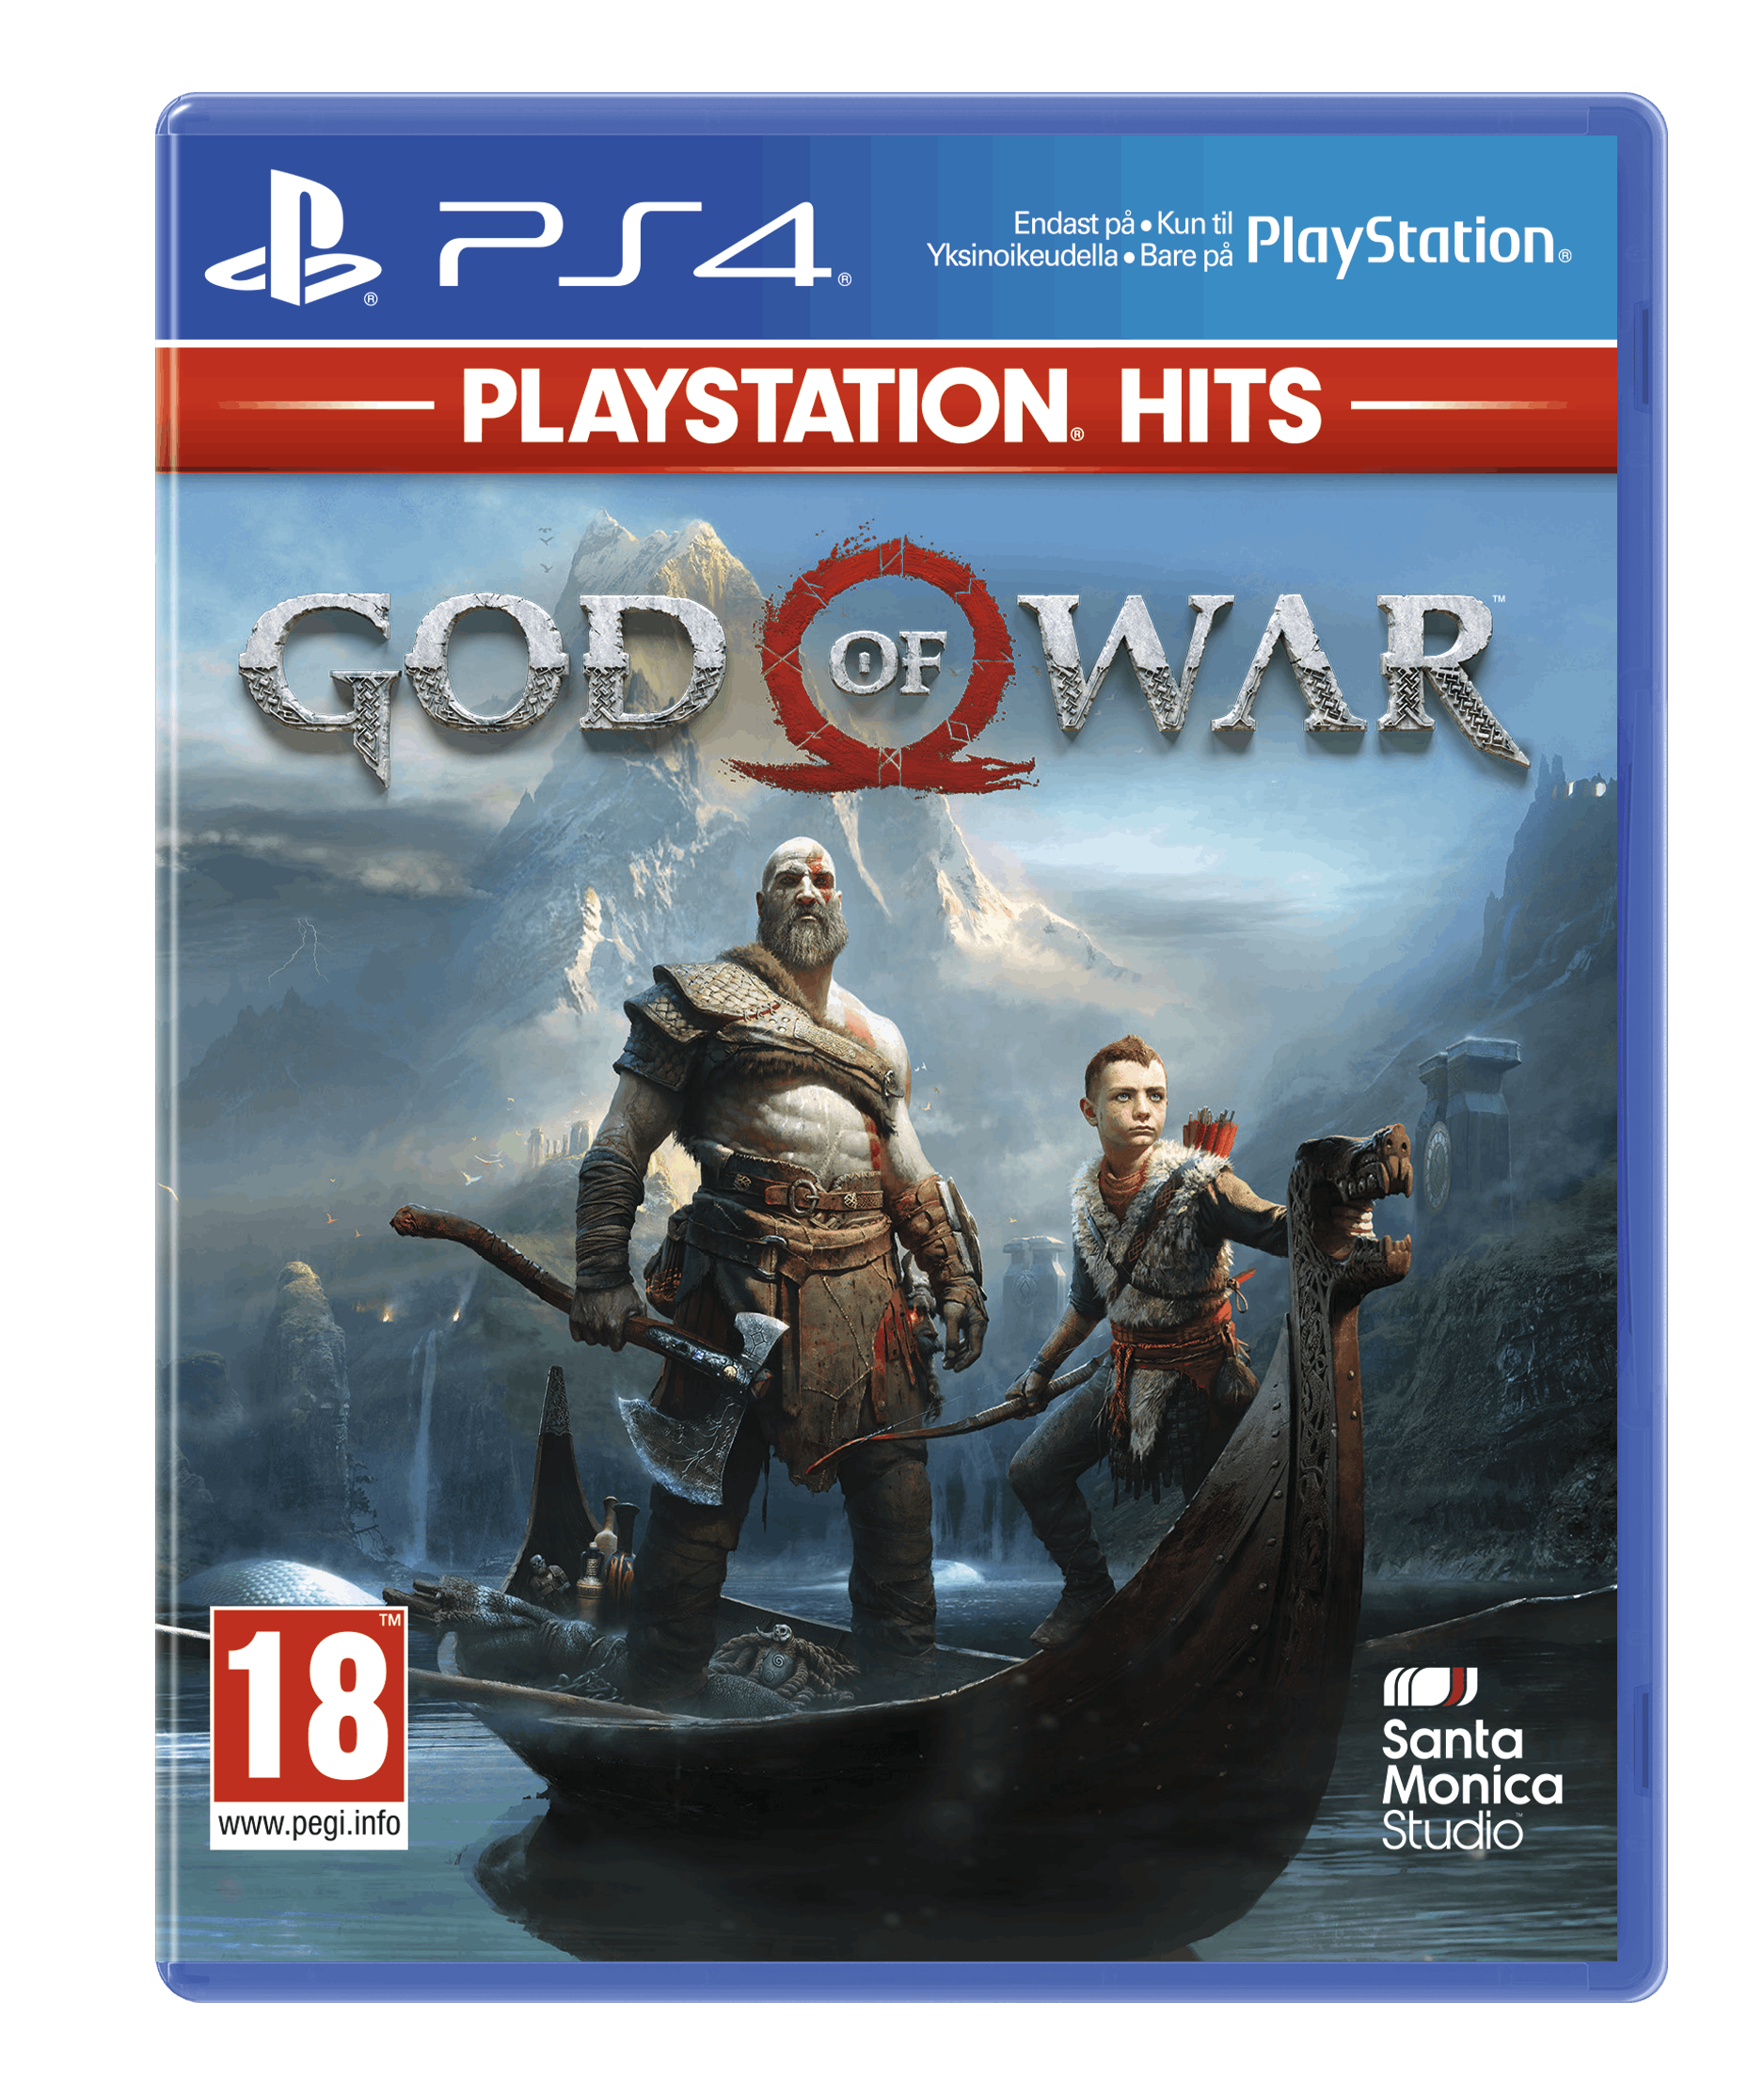 God of War (PlayStation Hits) (Nordic)